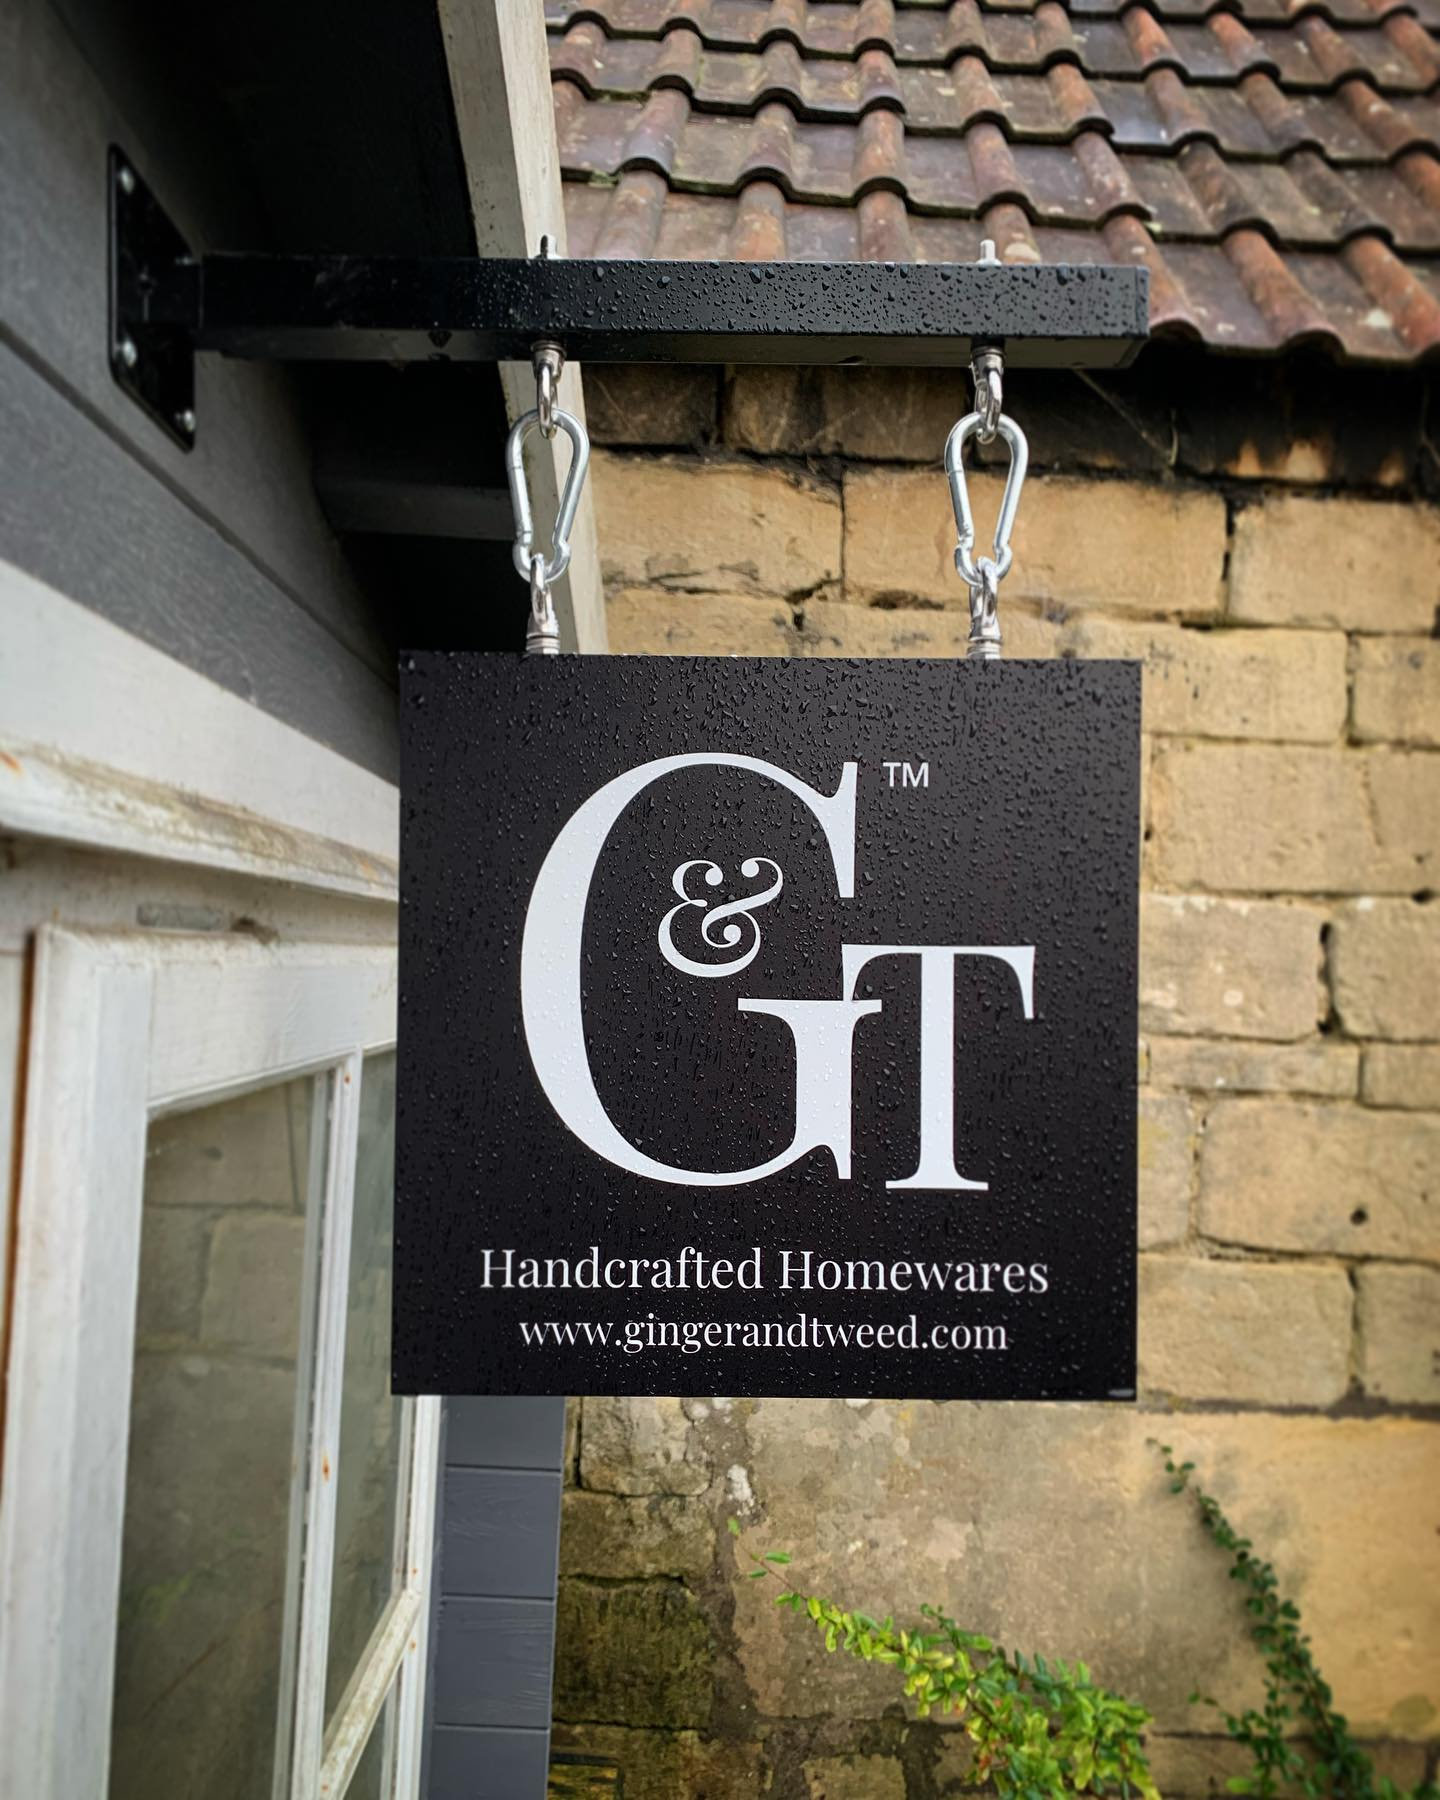 I had this sign made for Tweed for his birthday Such a lovely new addition to our garden workshop! #brand #designasign #logo #handcrafted #homewares #ginger #tweed #workshop #gardenstudio #garden #shop